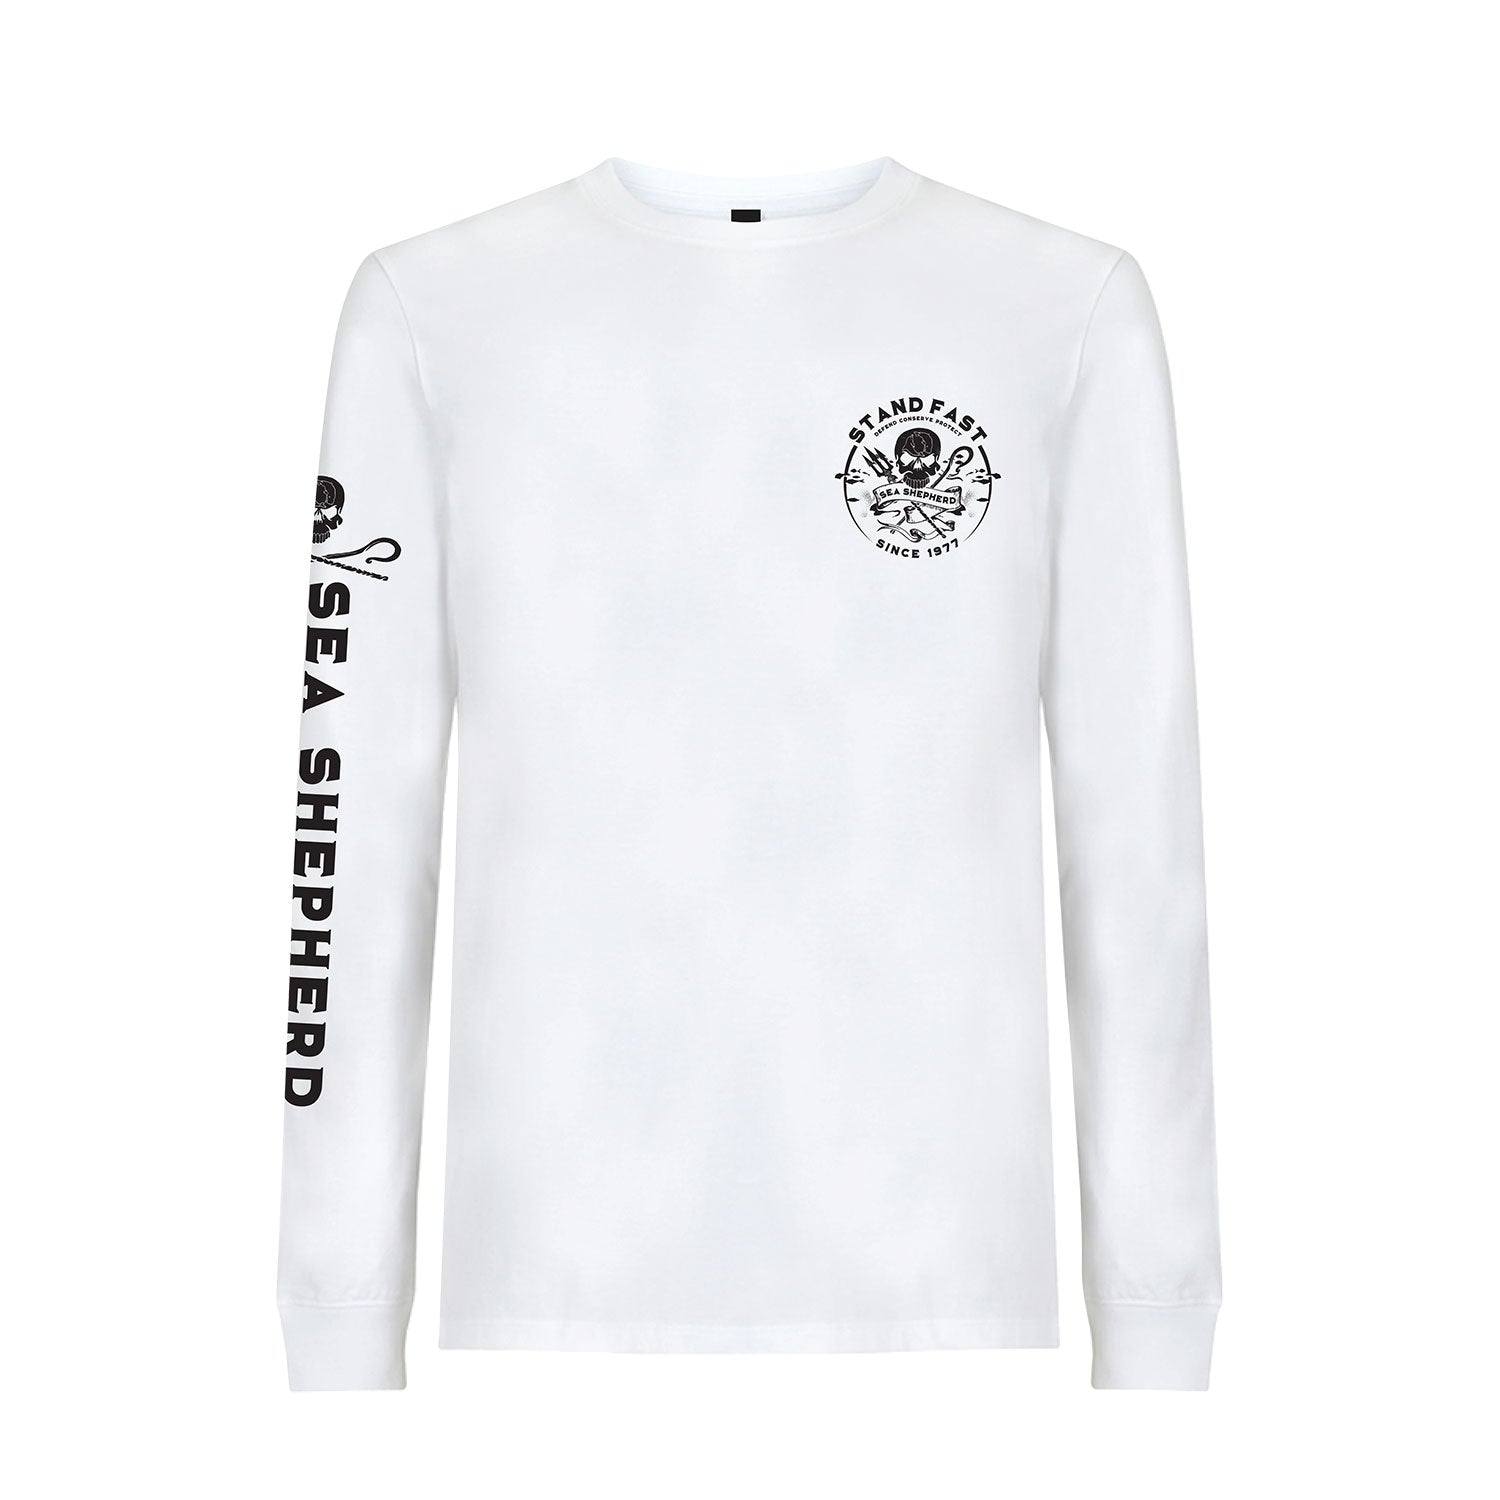 Sea Shepherd Defenders View Organic Jersey L/S Tee - White